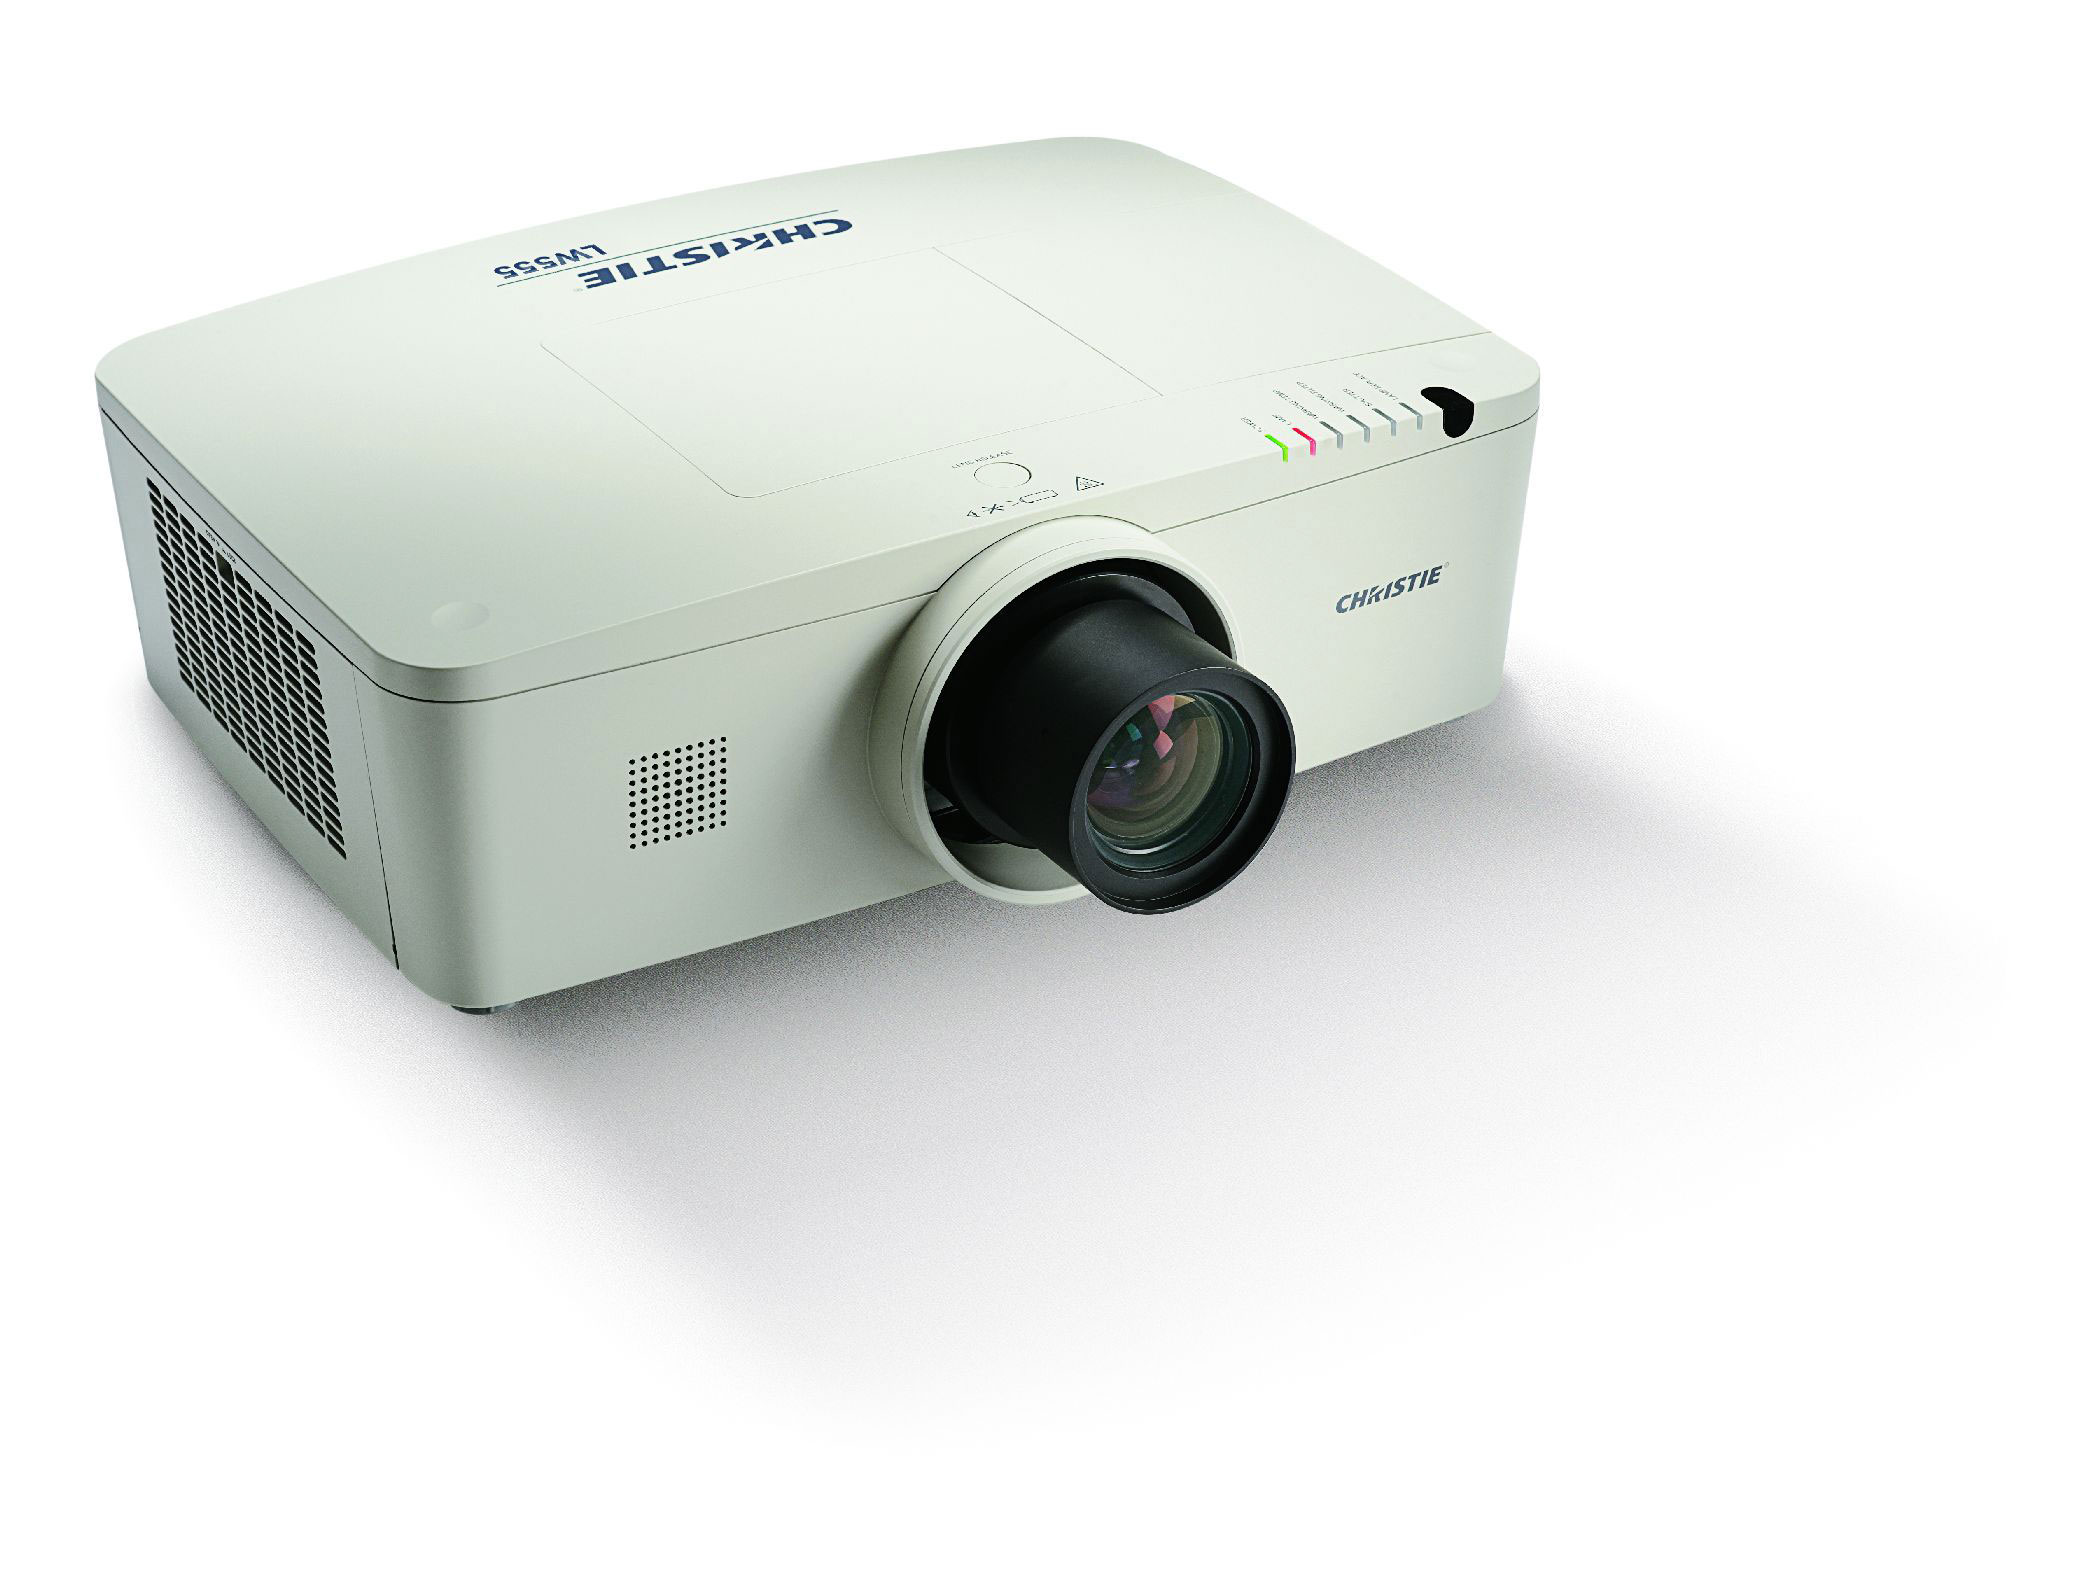 /globalassets/.catalog/products/images/christie-lw555/gallery/christie-lw555-lcd-digital-projector-image5.jpg